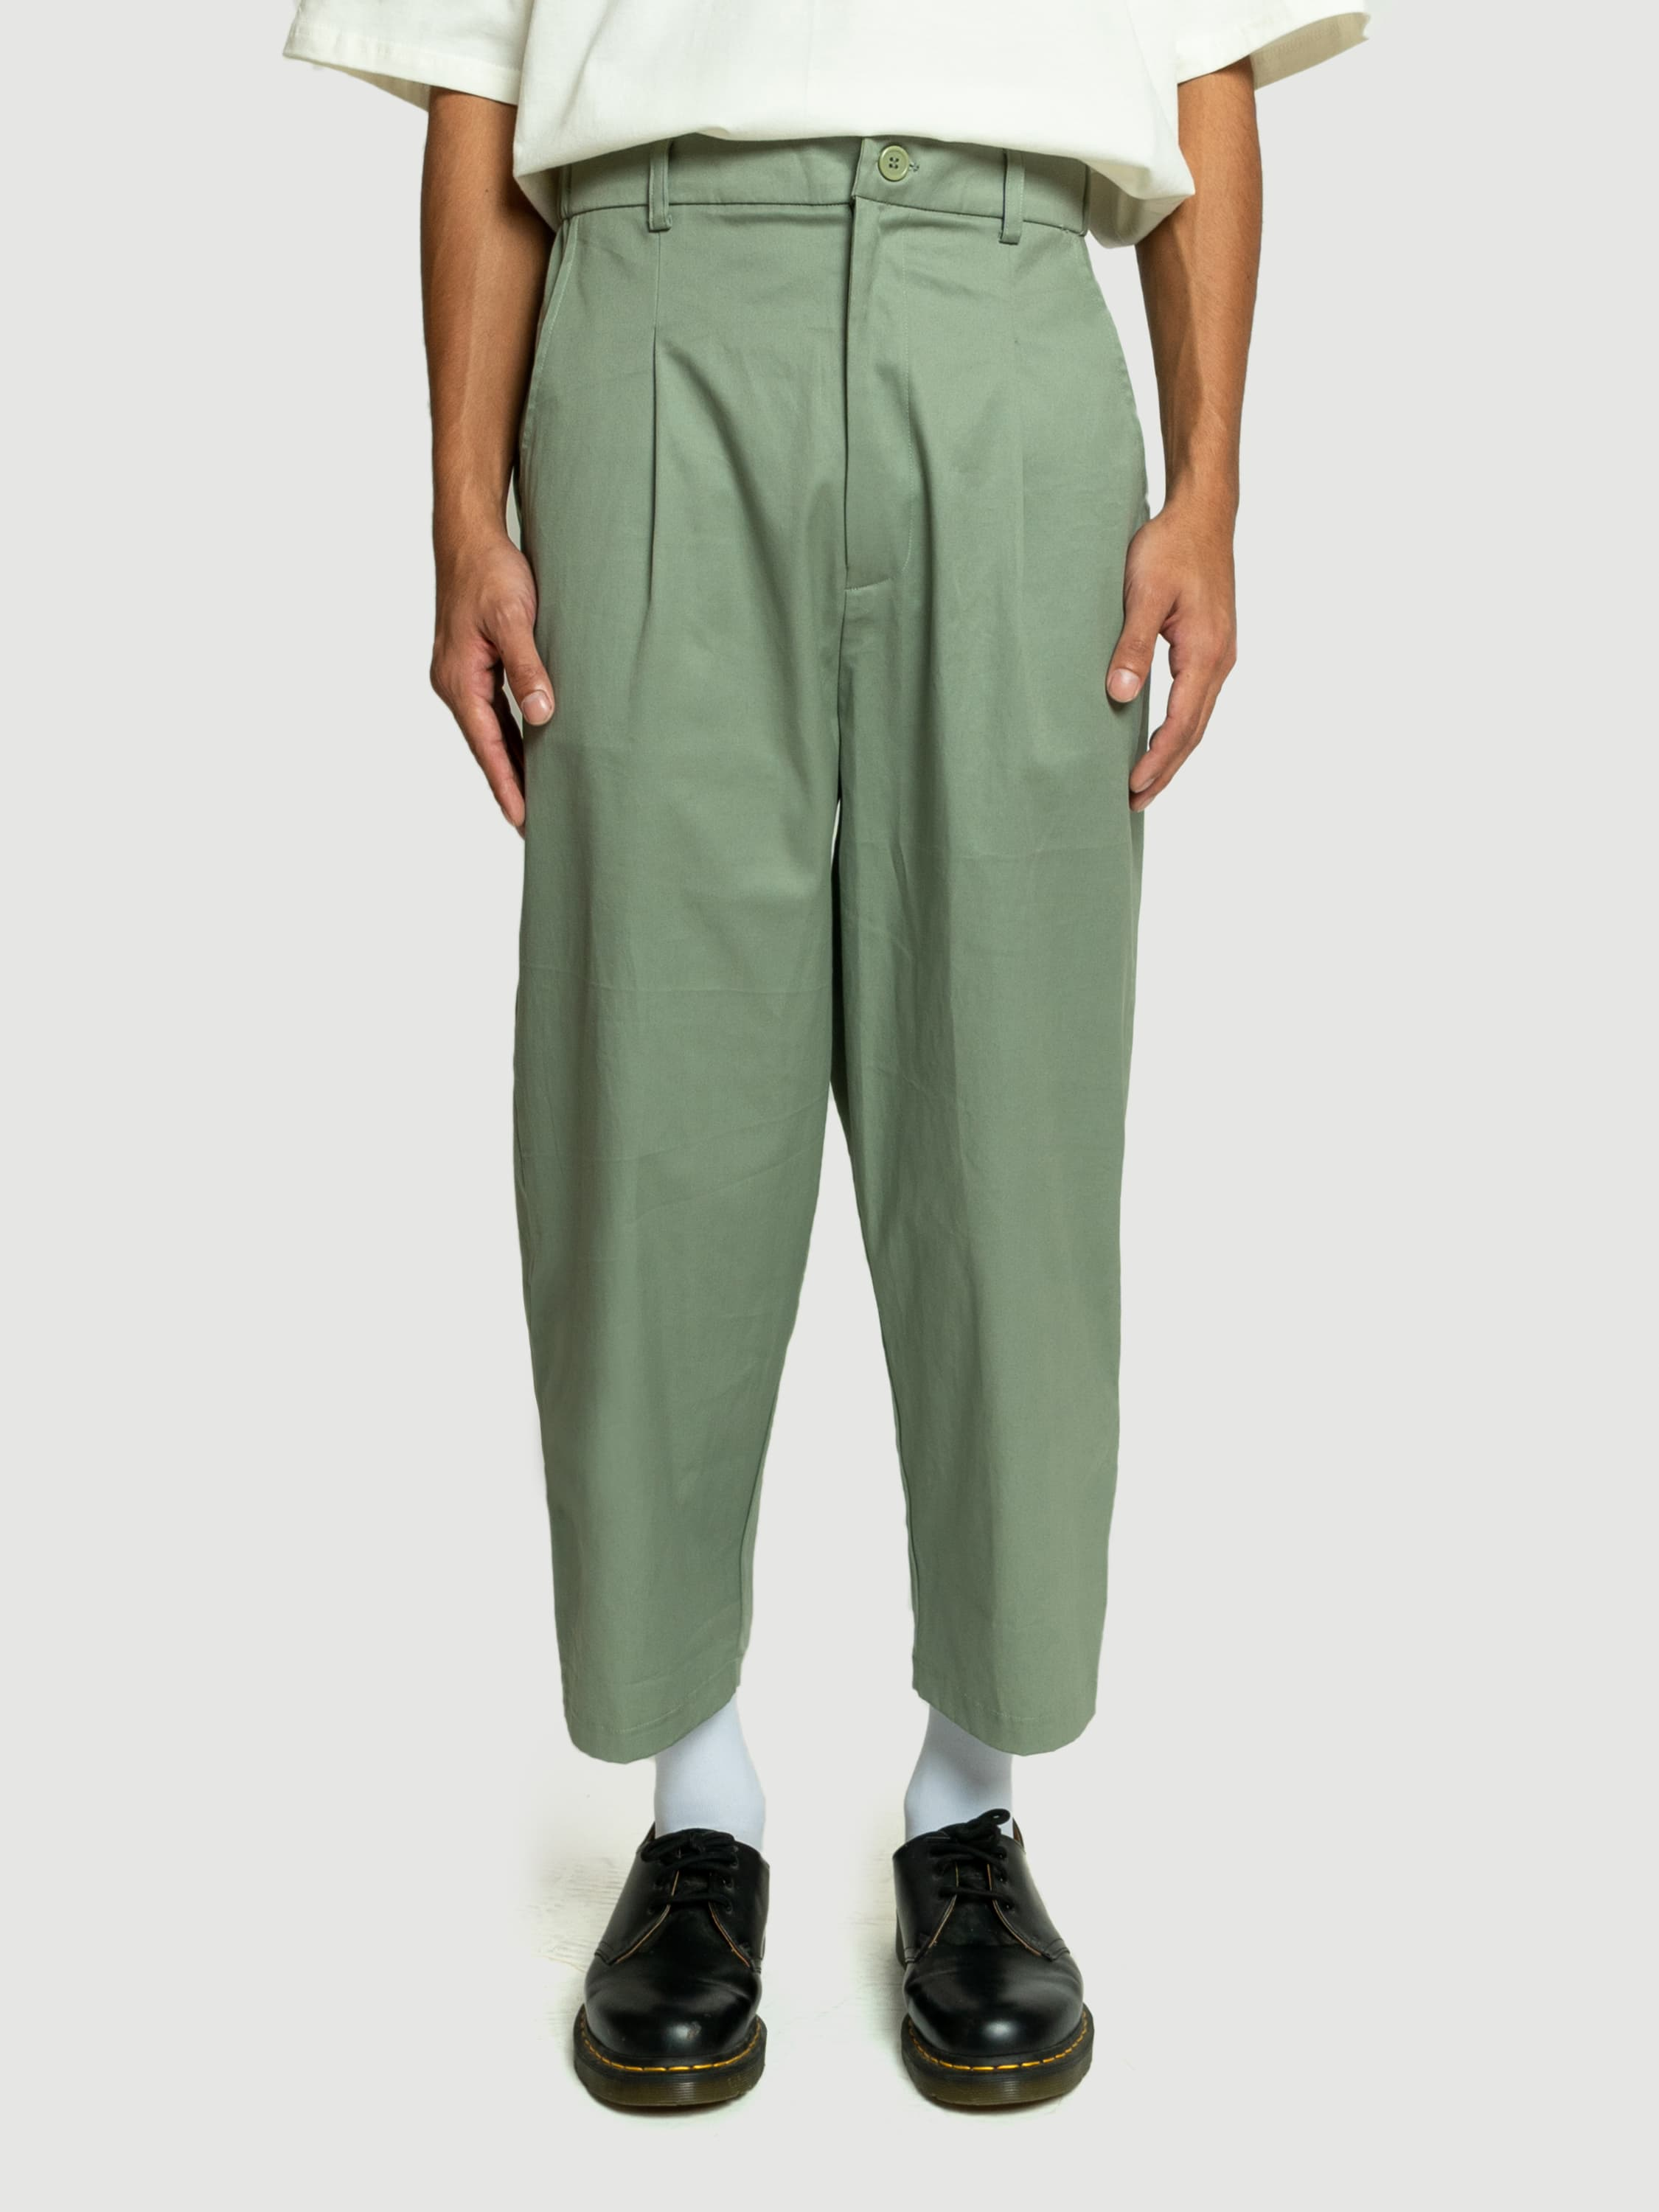 Baggy Mint Twill Pants